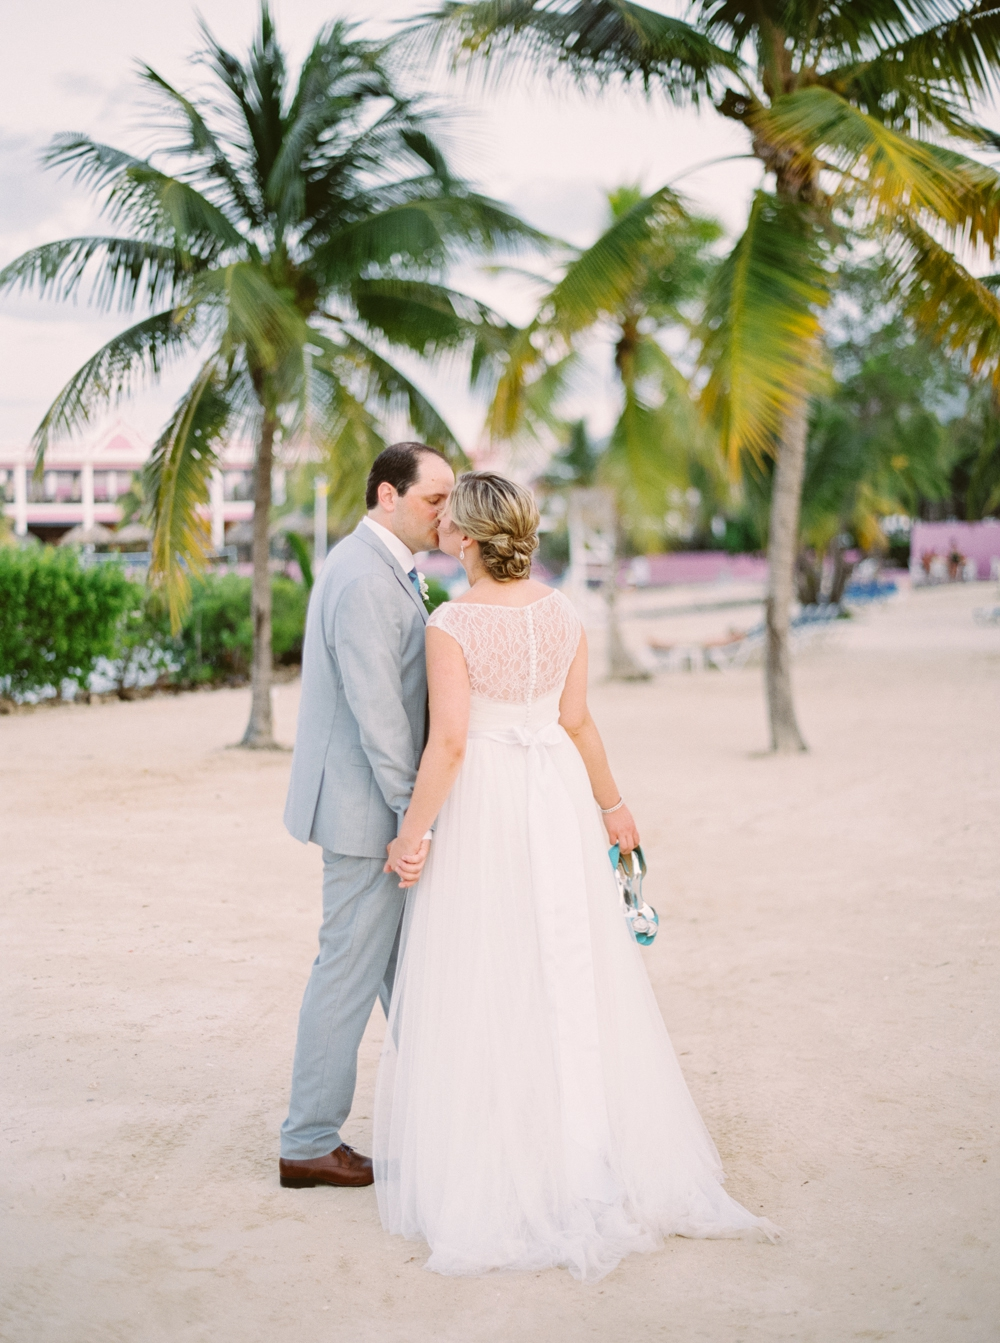 Montego Bay Jamaica Wedding | Justine Milton Photography | Destination Wedding Photographer